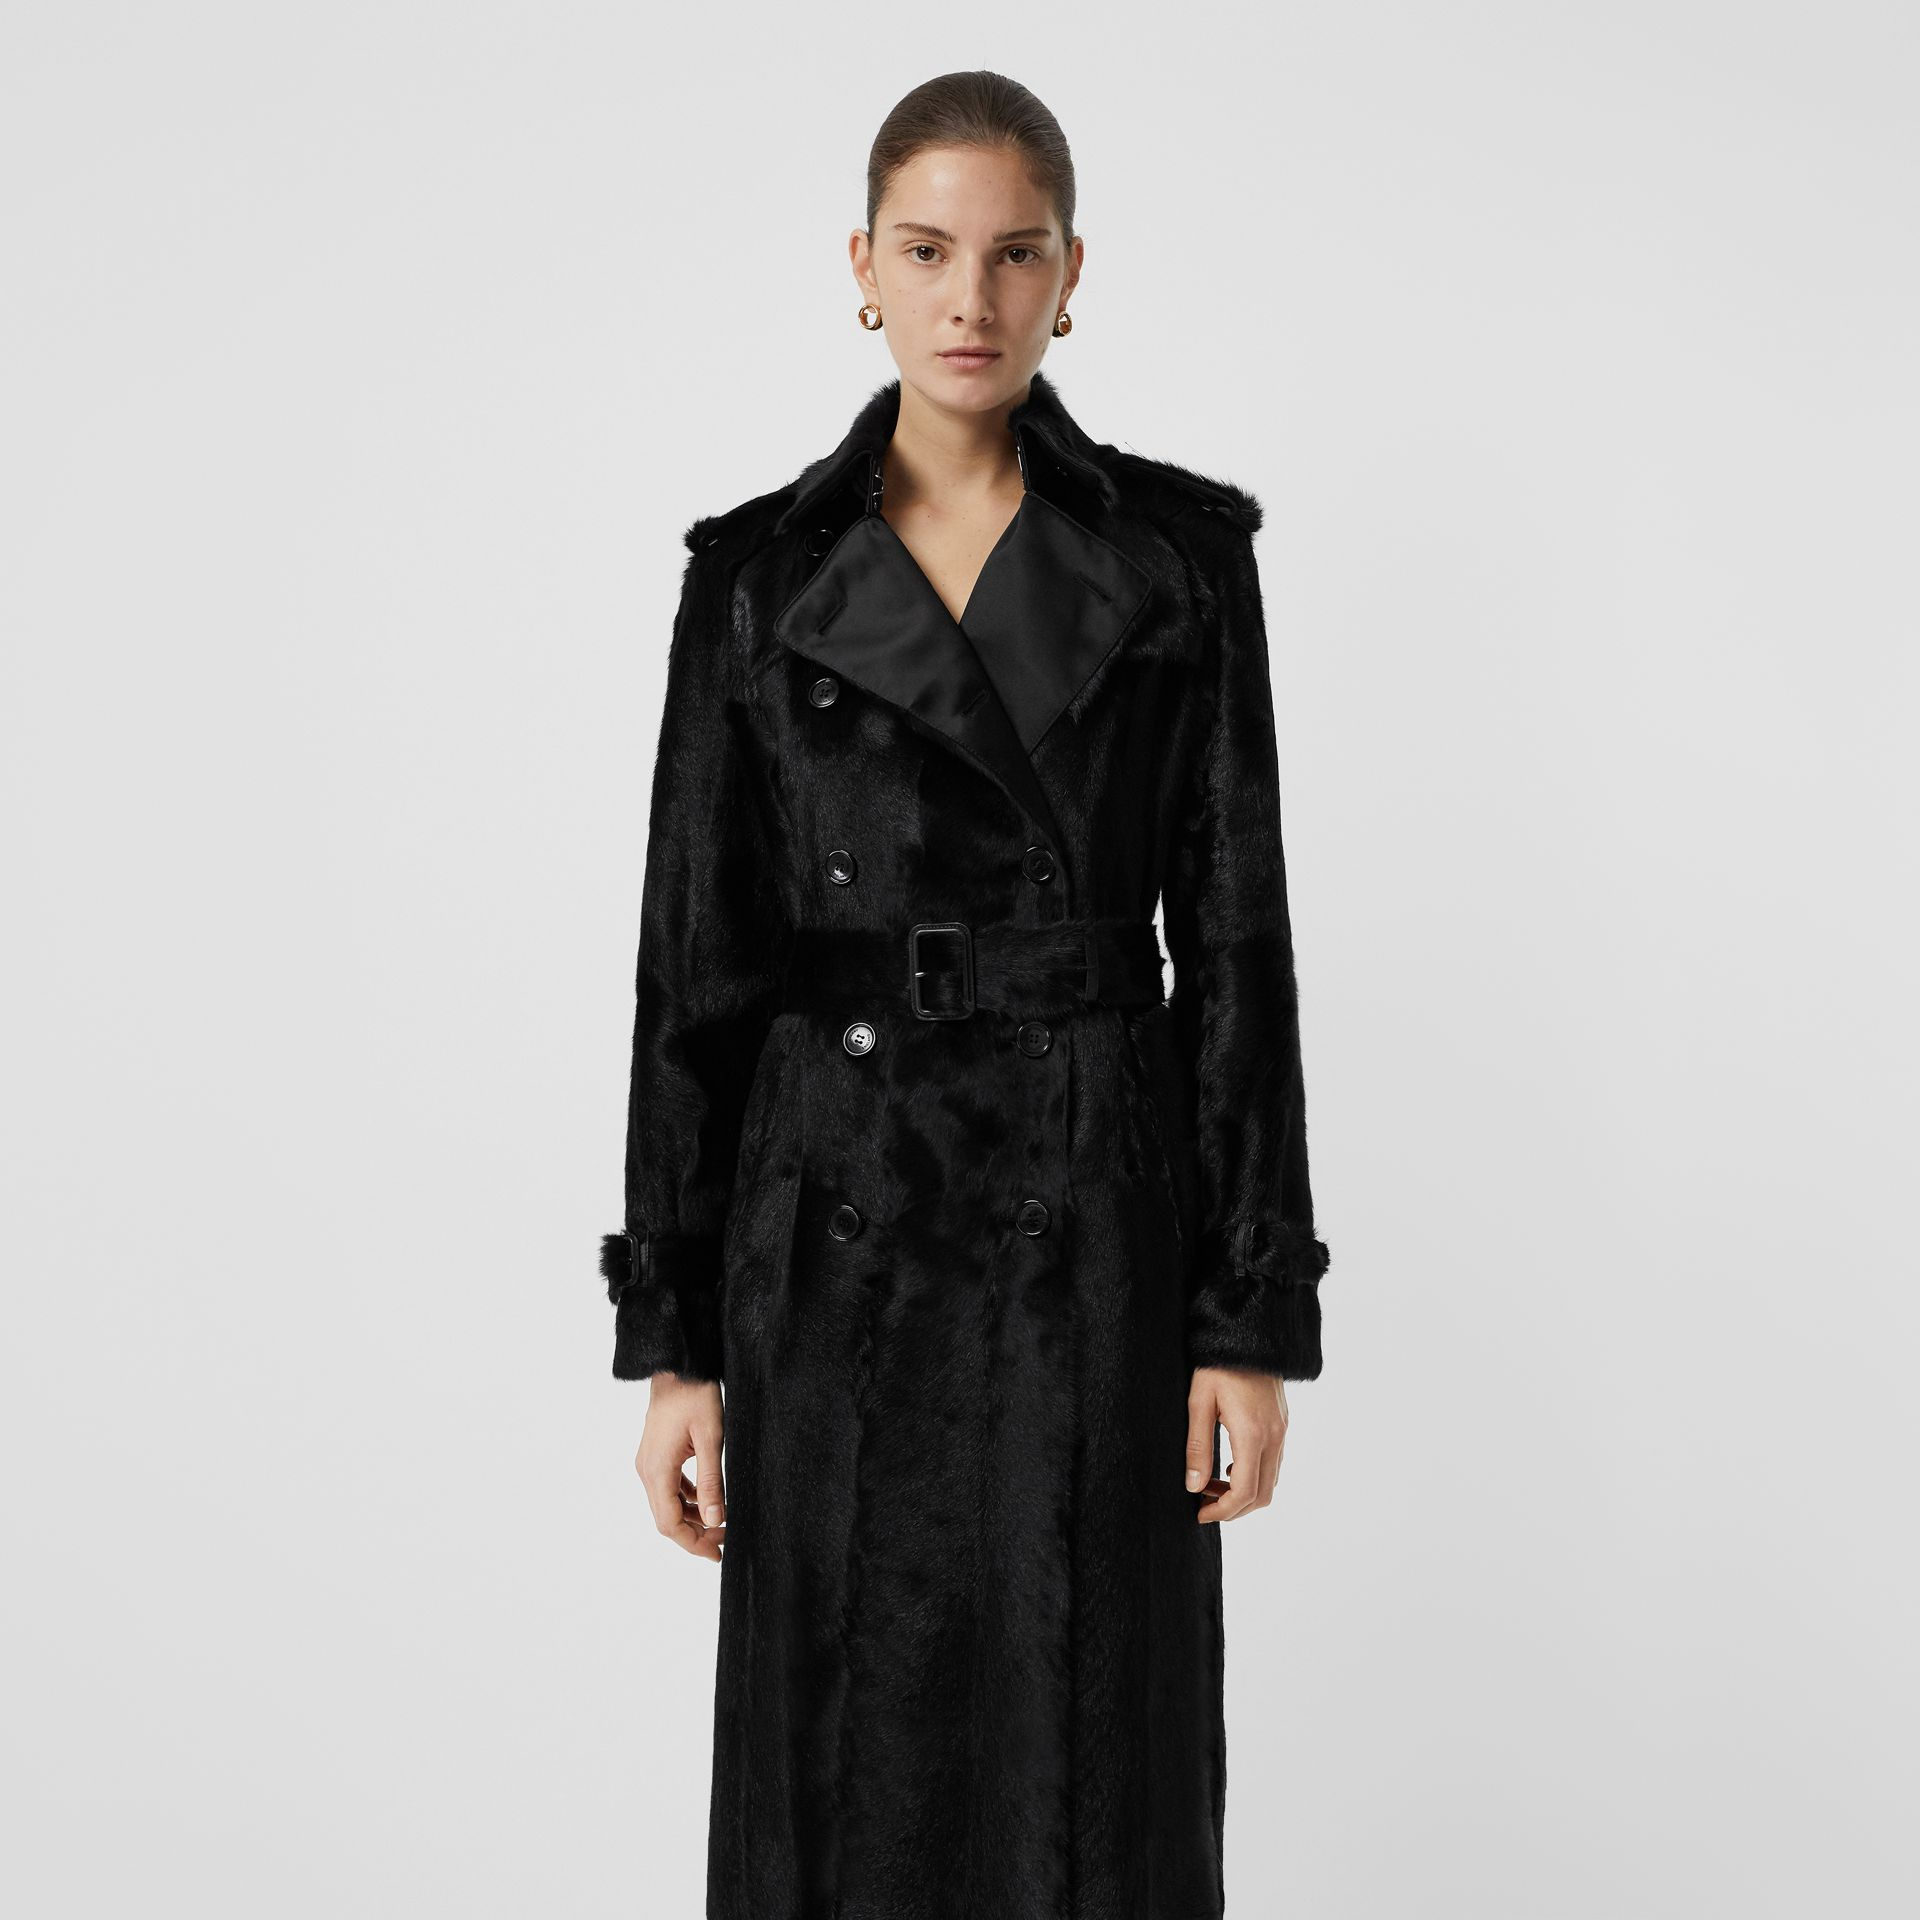 Goat Trench Coat in Black - Women | Burberry Canada - gallery image 7